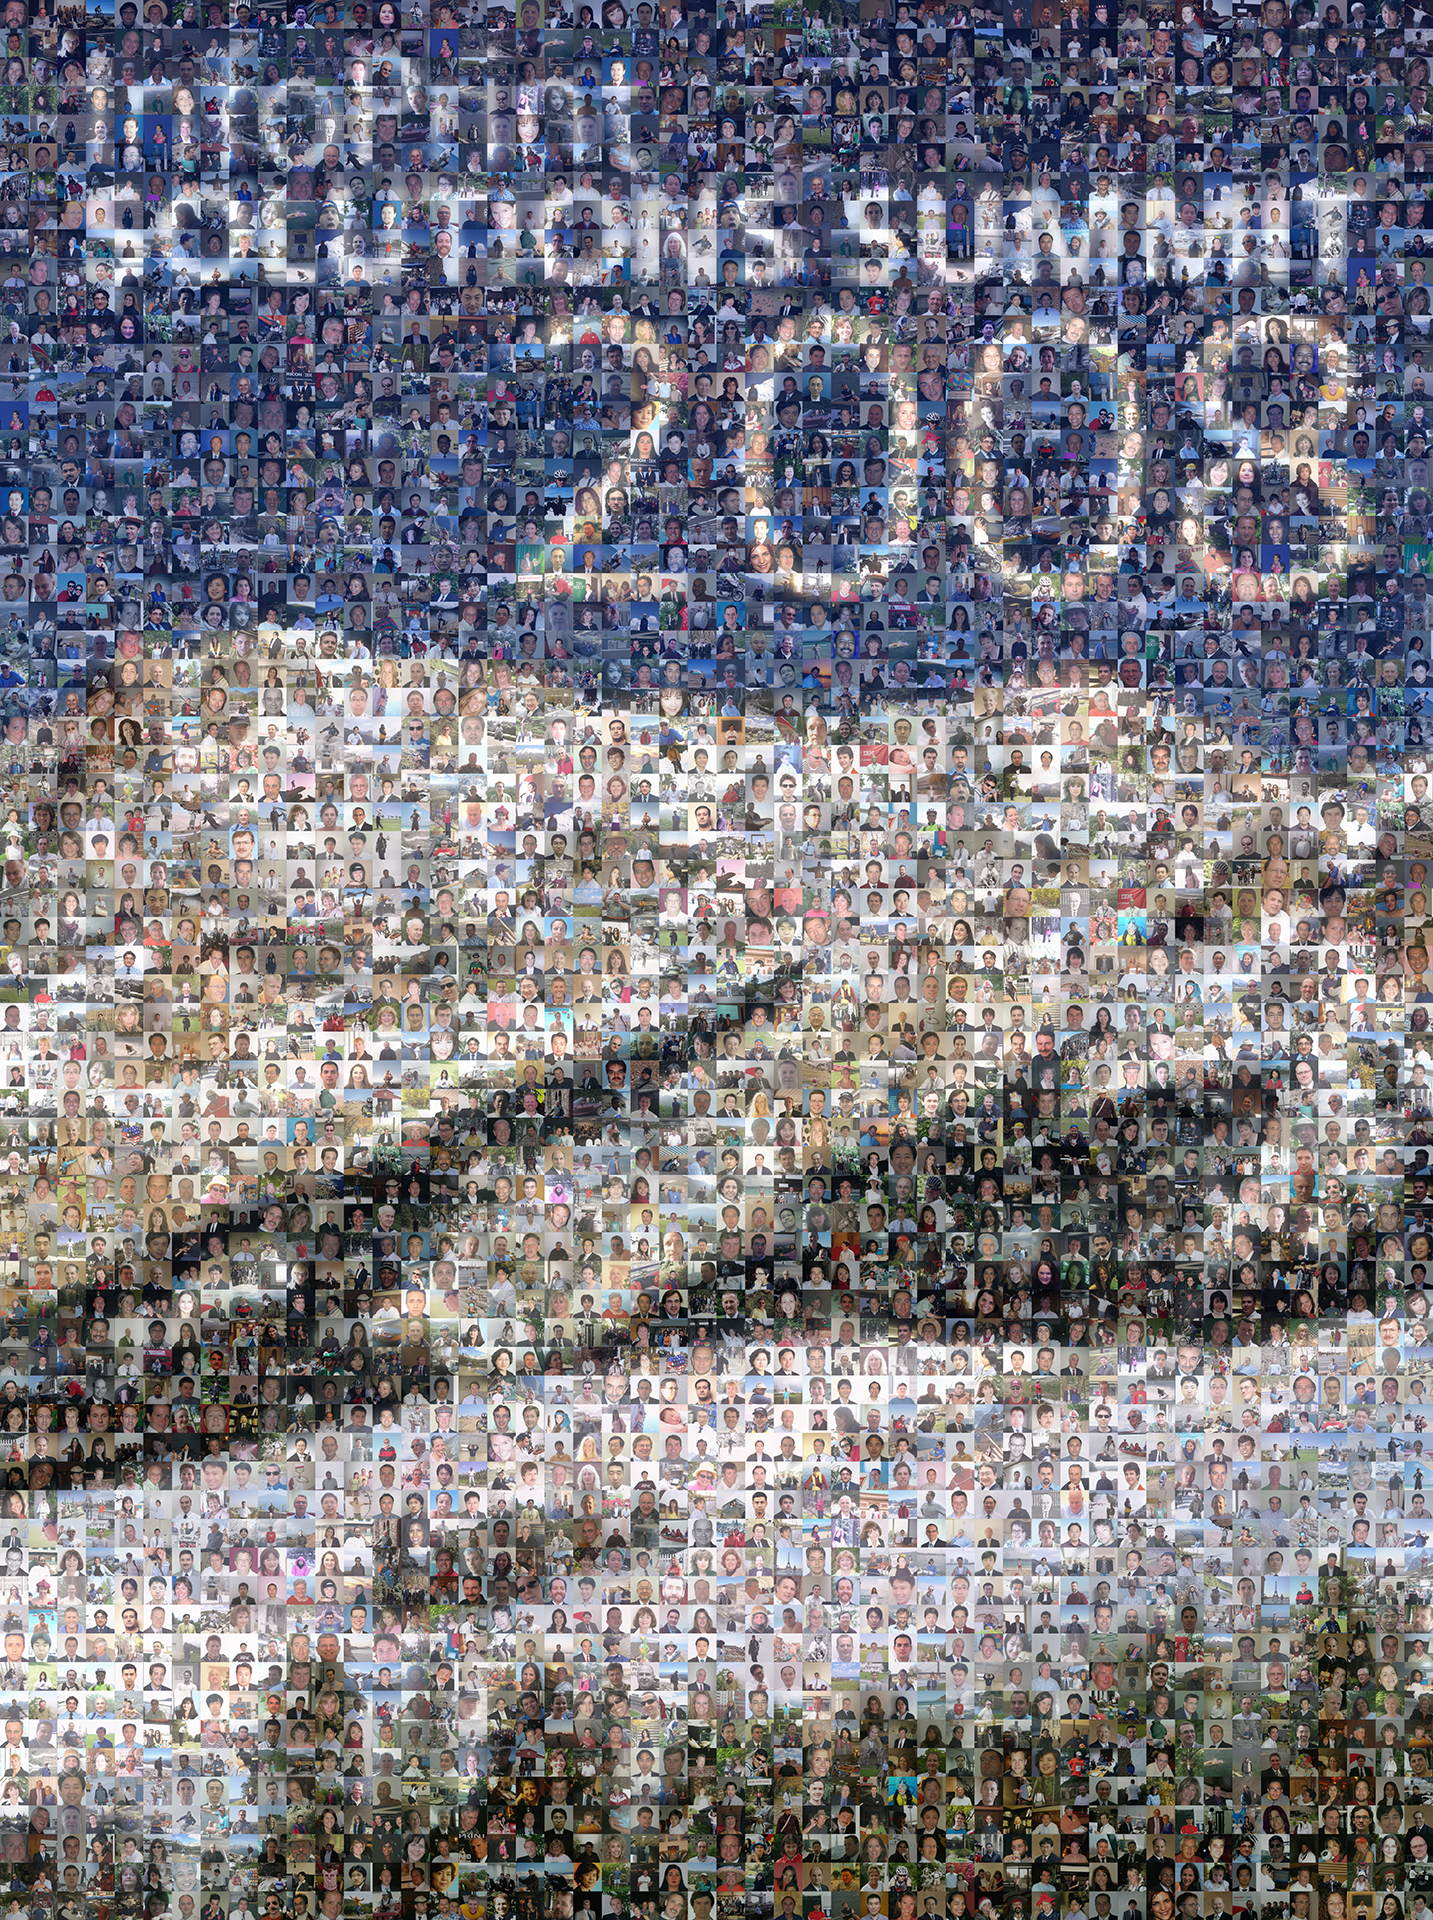 photo mosaic 18' x 24' poster created using over 1600 employee submitted photos